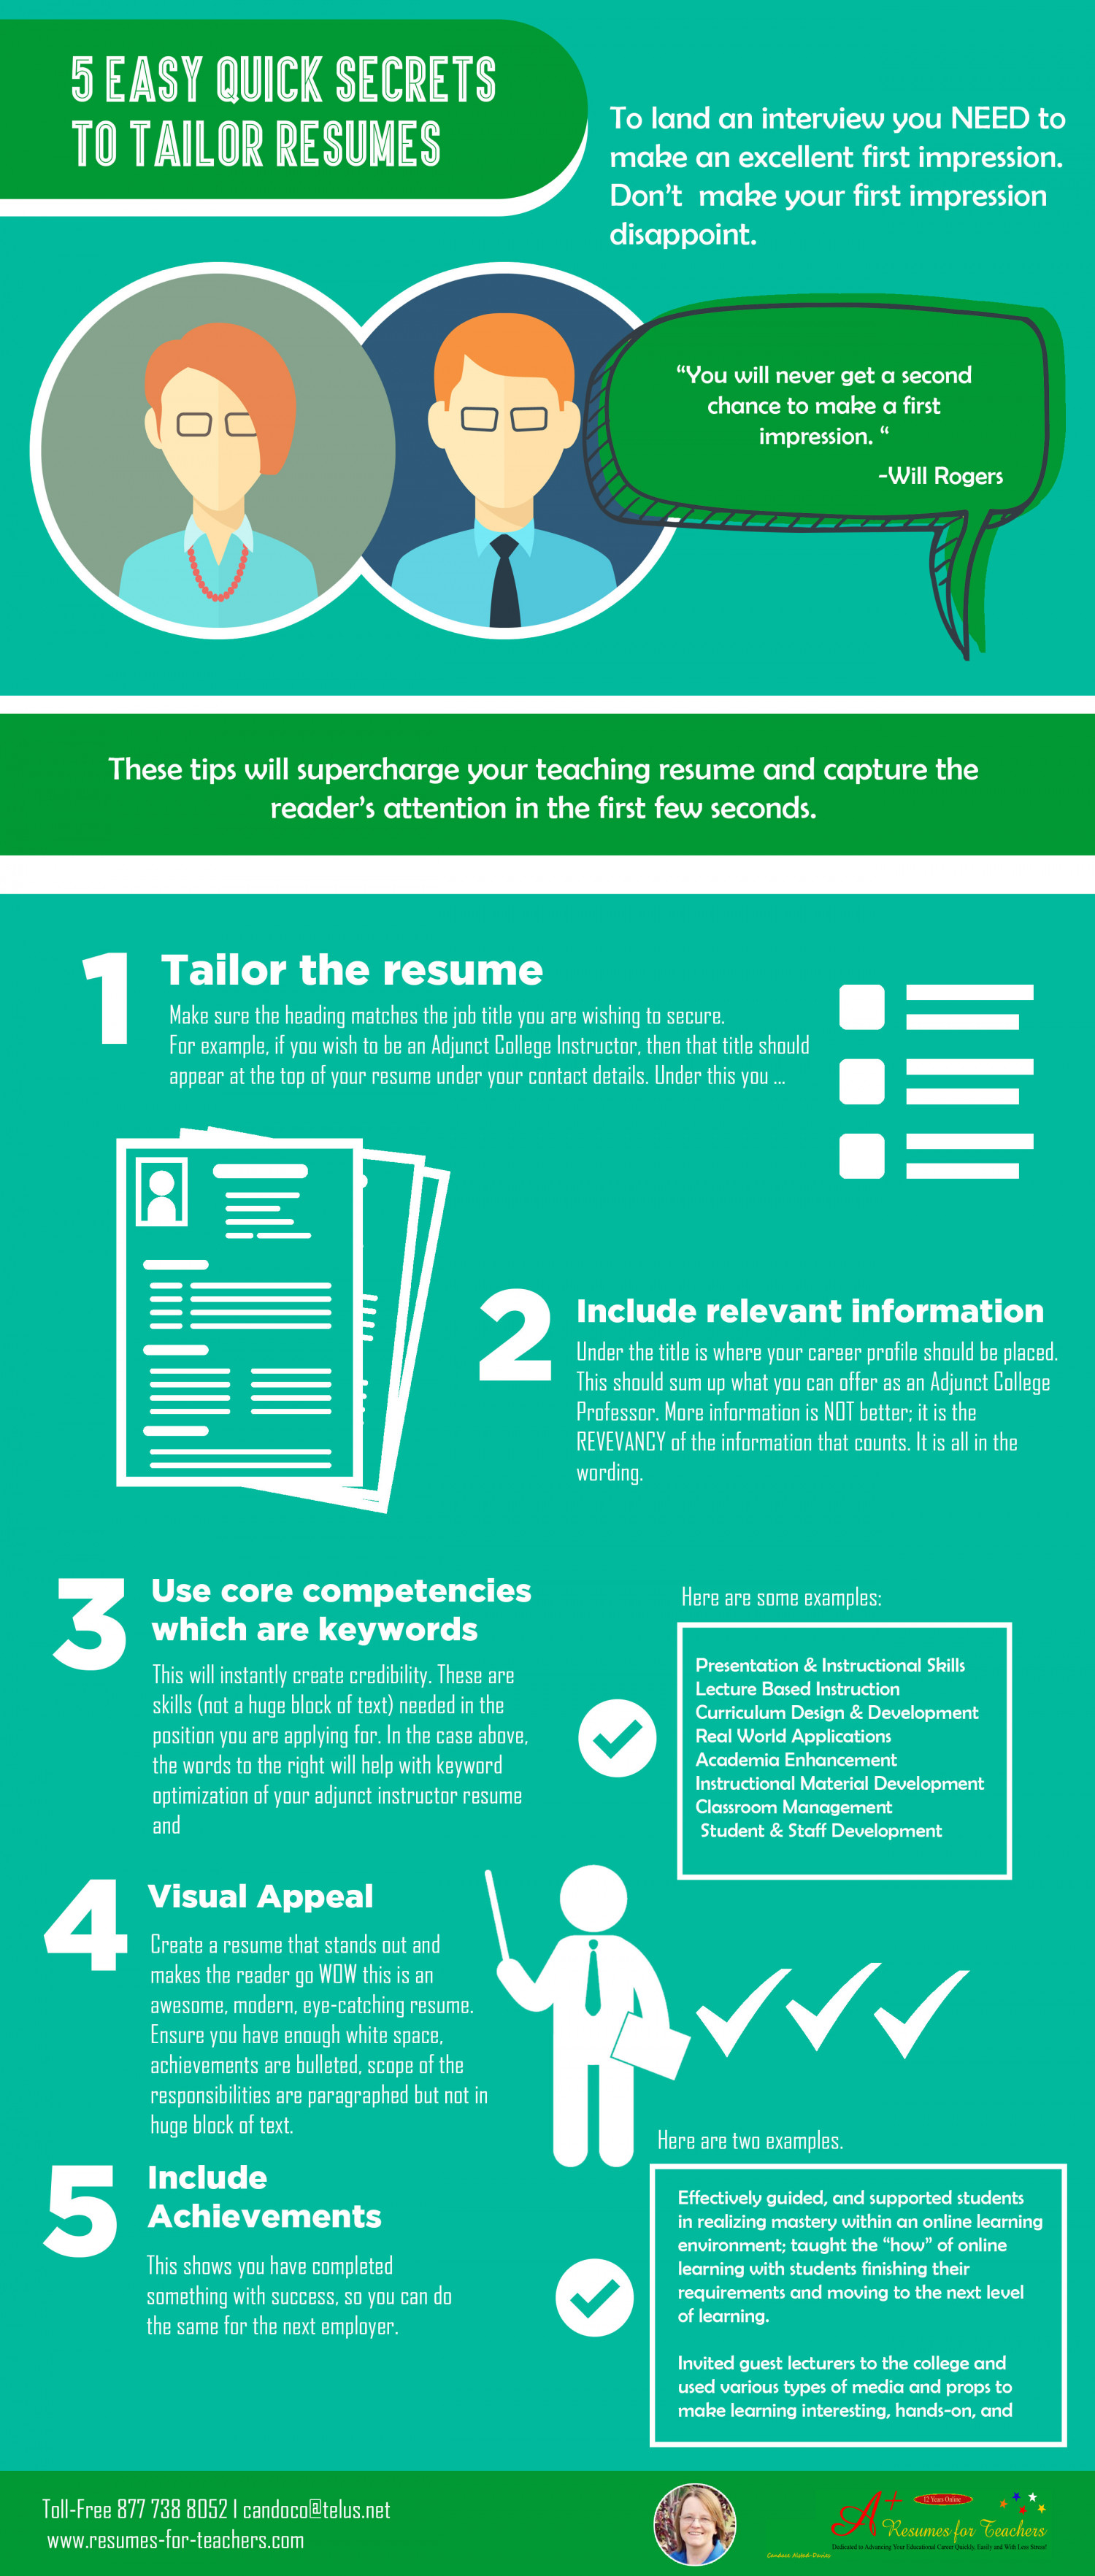 Education Resume Writing Tips and Strategies for Teachers and ...